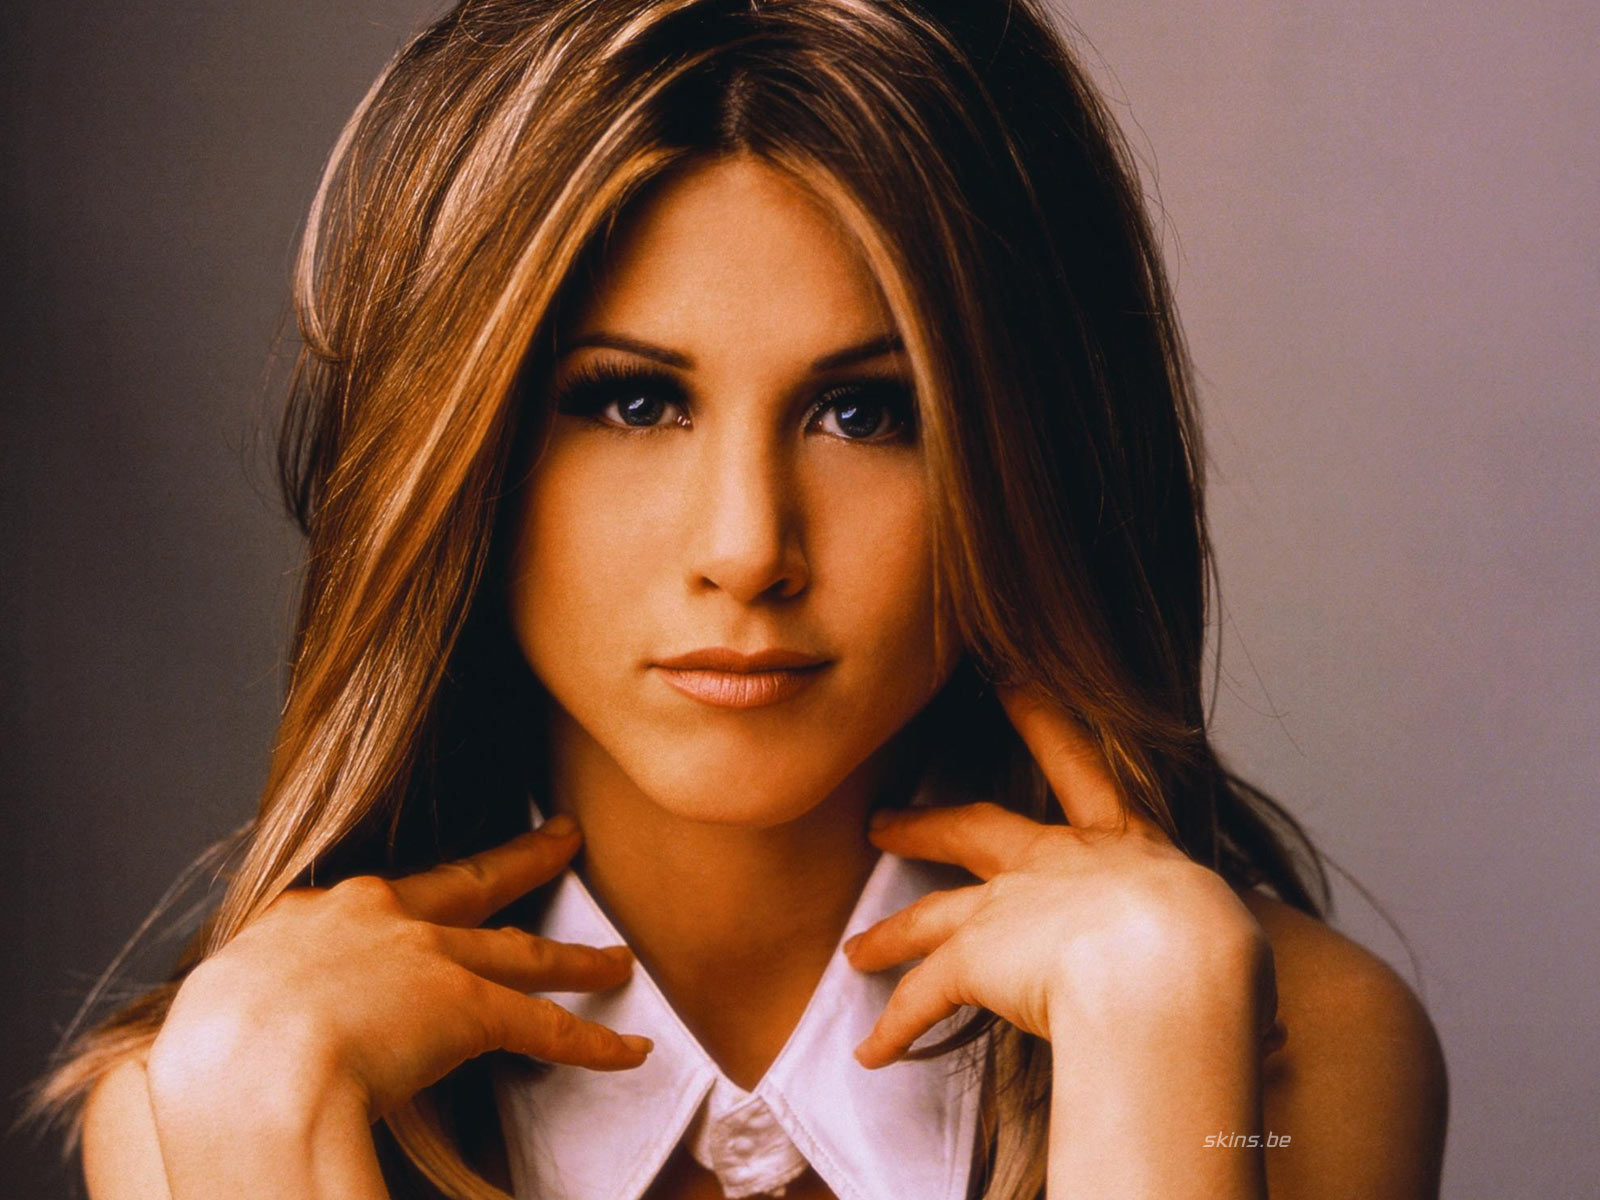 ... top 10 sexiest women lists when she entered the scene as Rachel Green in ...